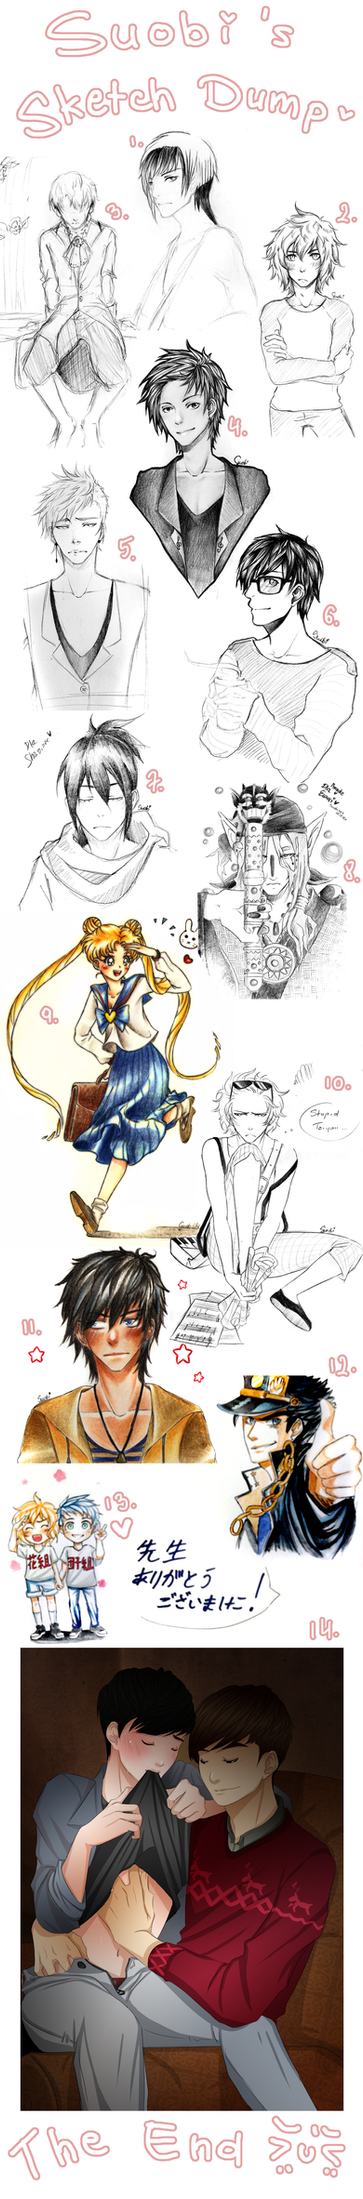 SketchDump XD by Suobi-chan